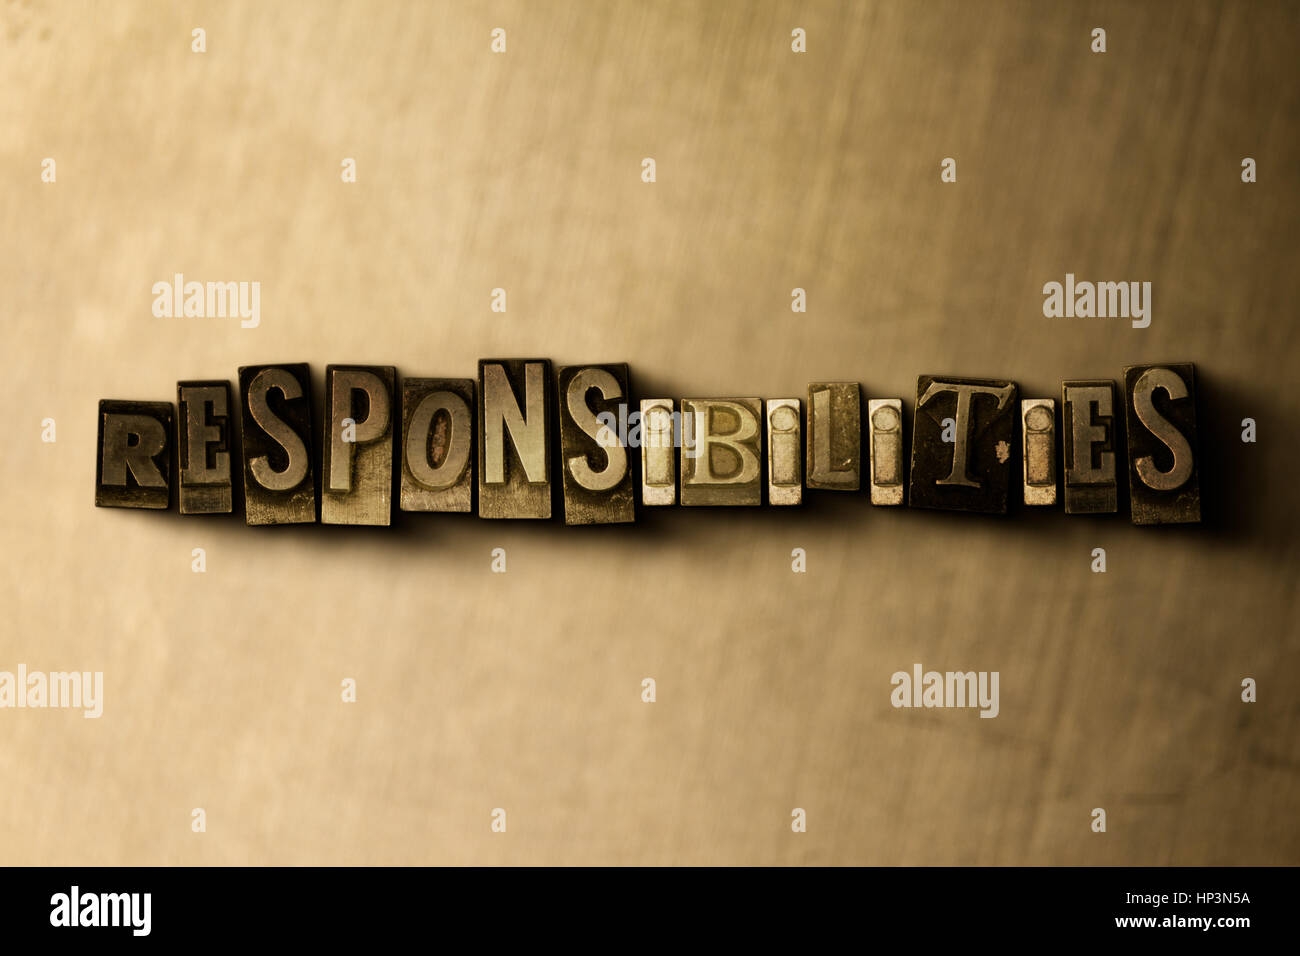 RESPONSIBILITIES - close-up of grungy vintage typeset word on metal backdrop. Royalty free stock illustration.  - Stock Image